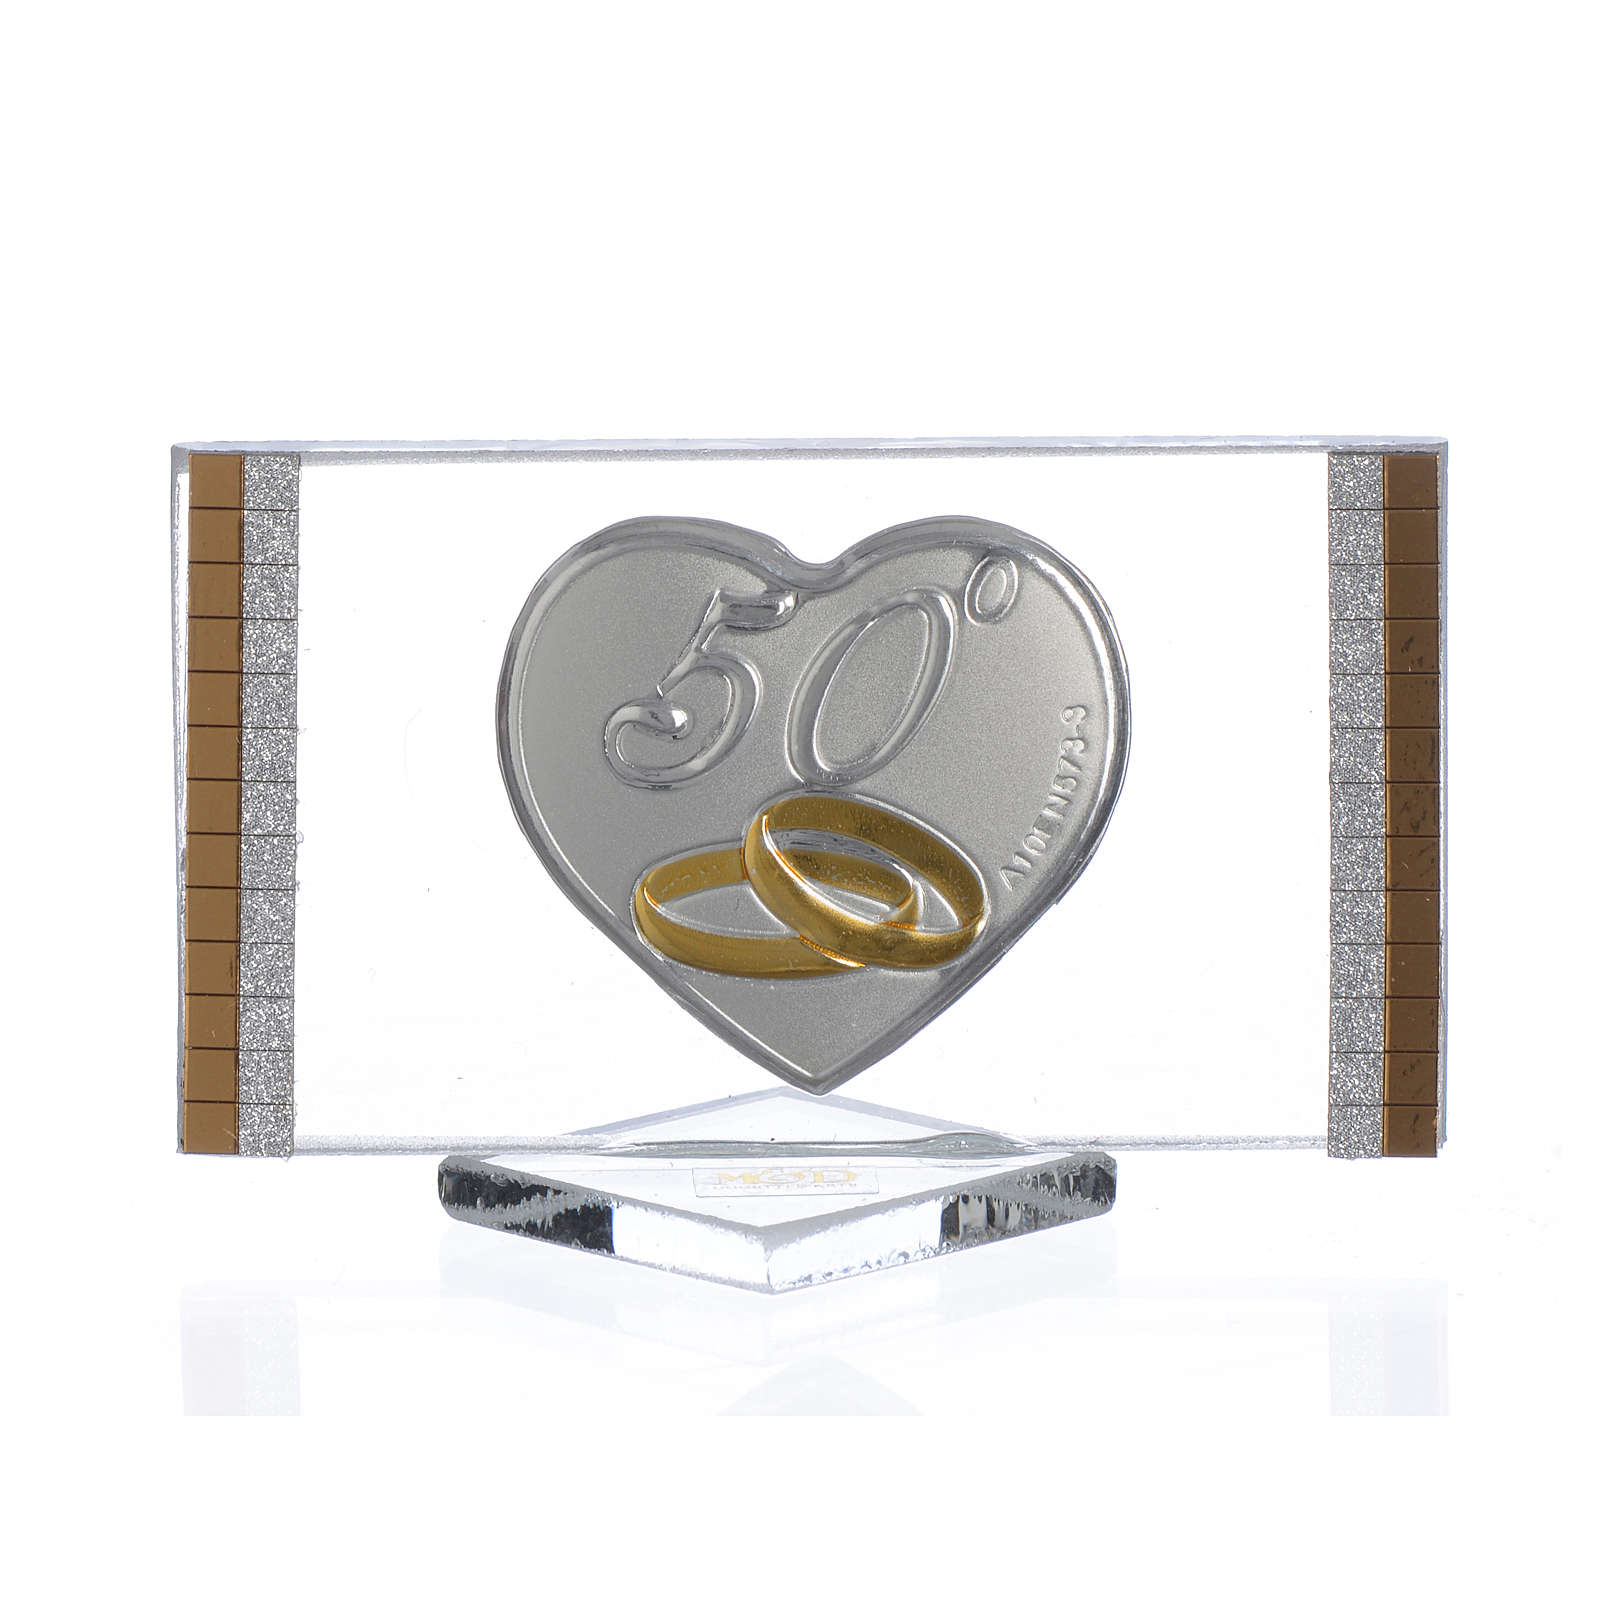 50 year anniversary favour, picture measuring 4.5x7cm 3